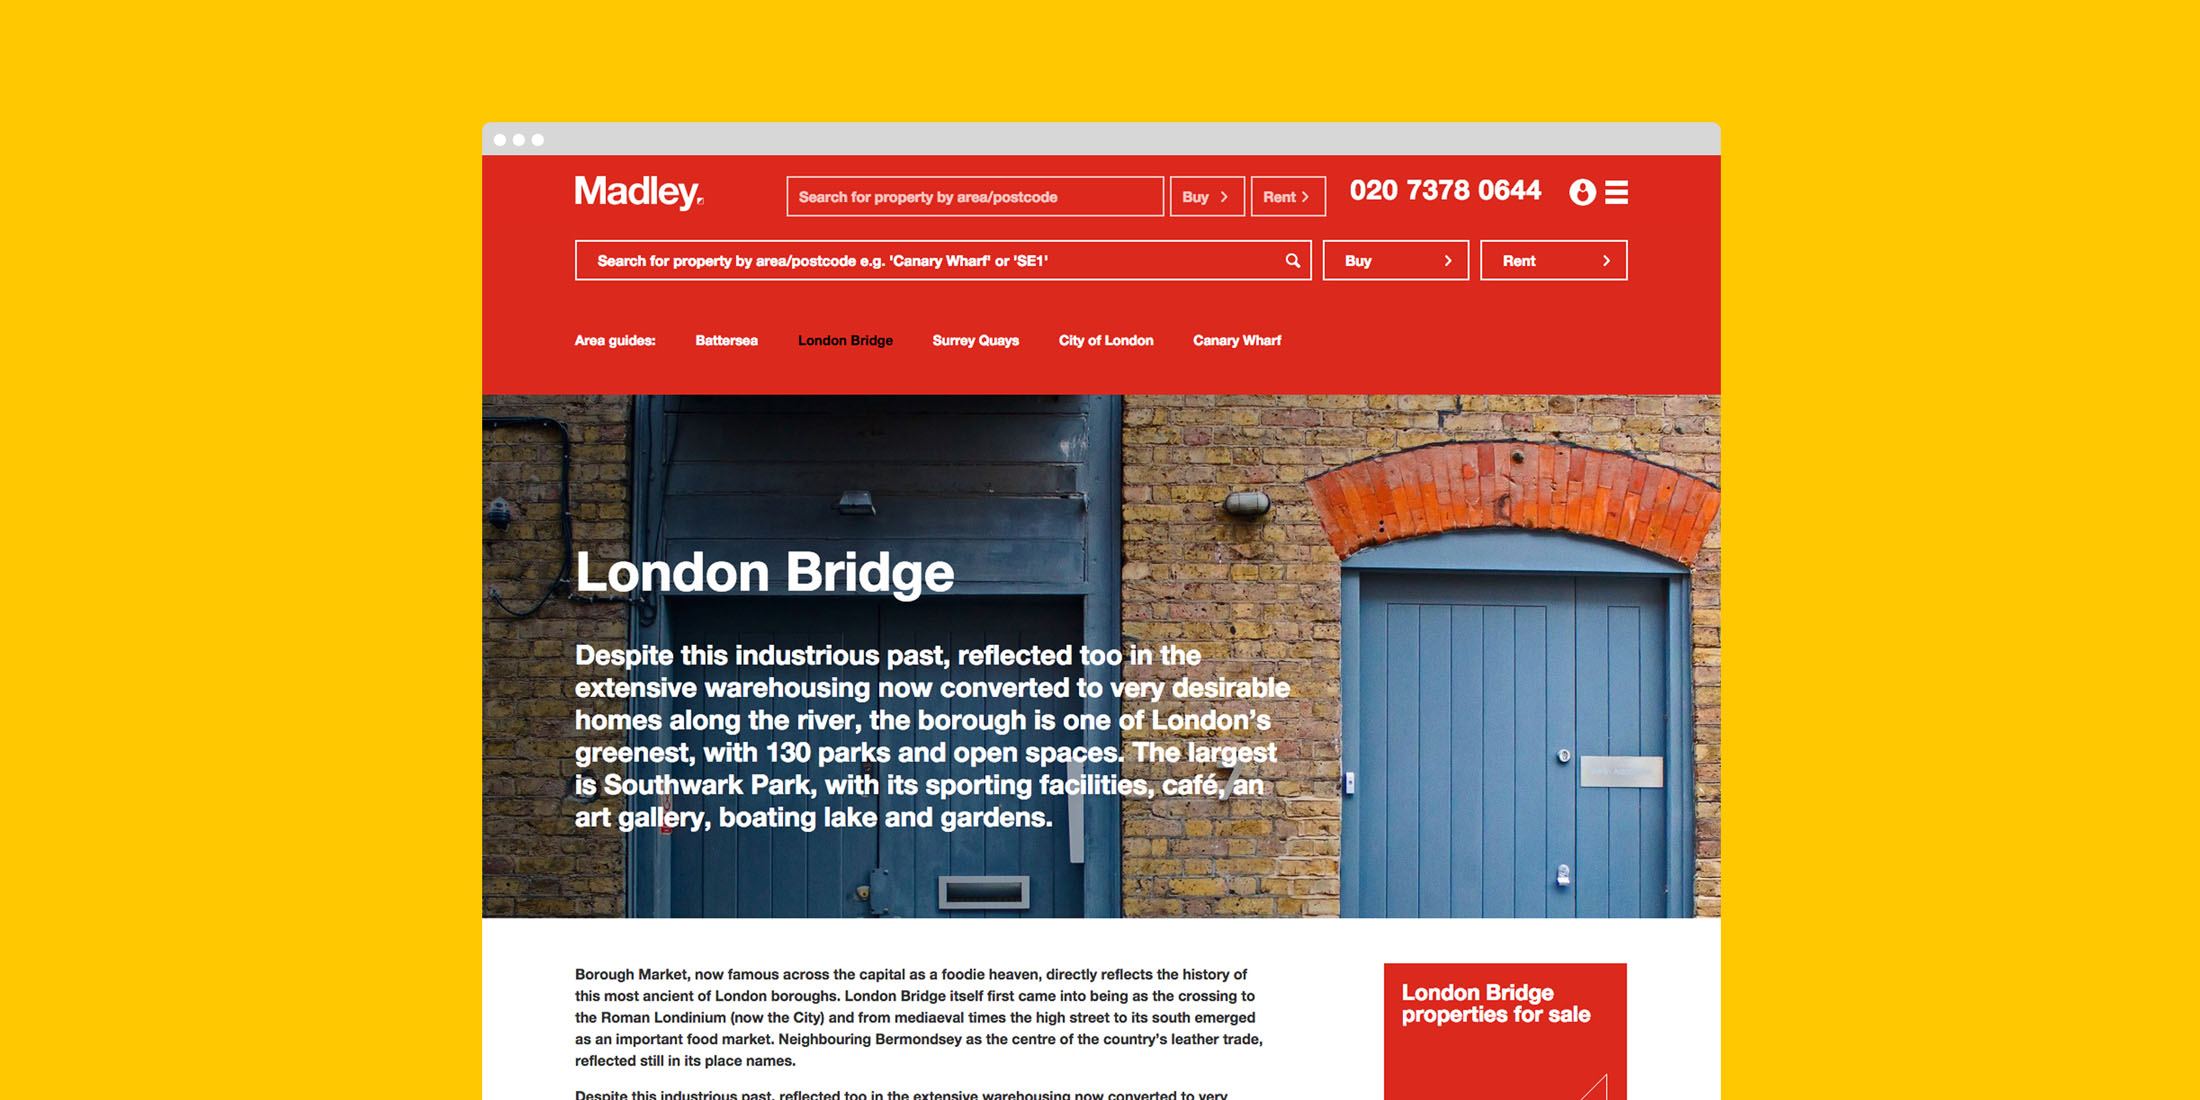 Madley website